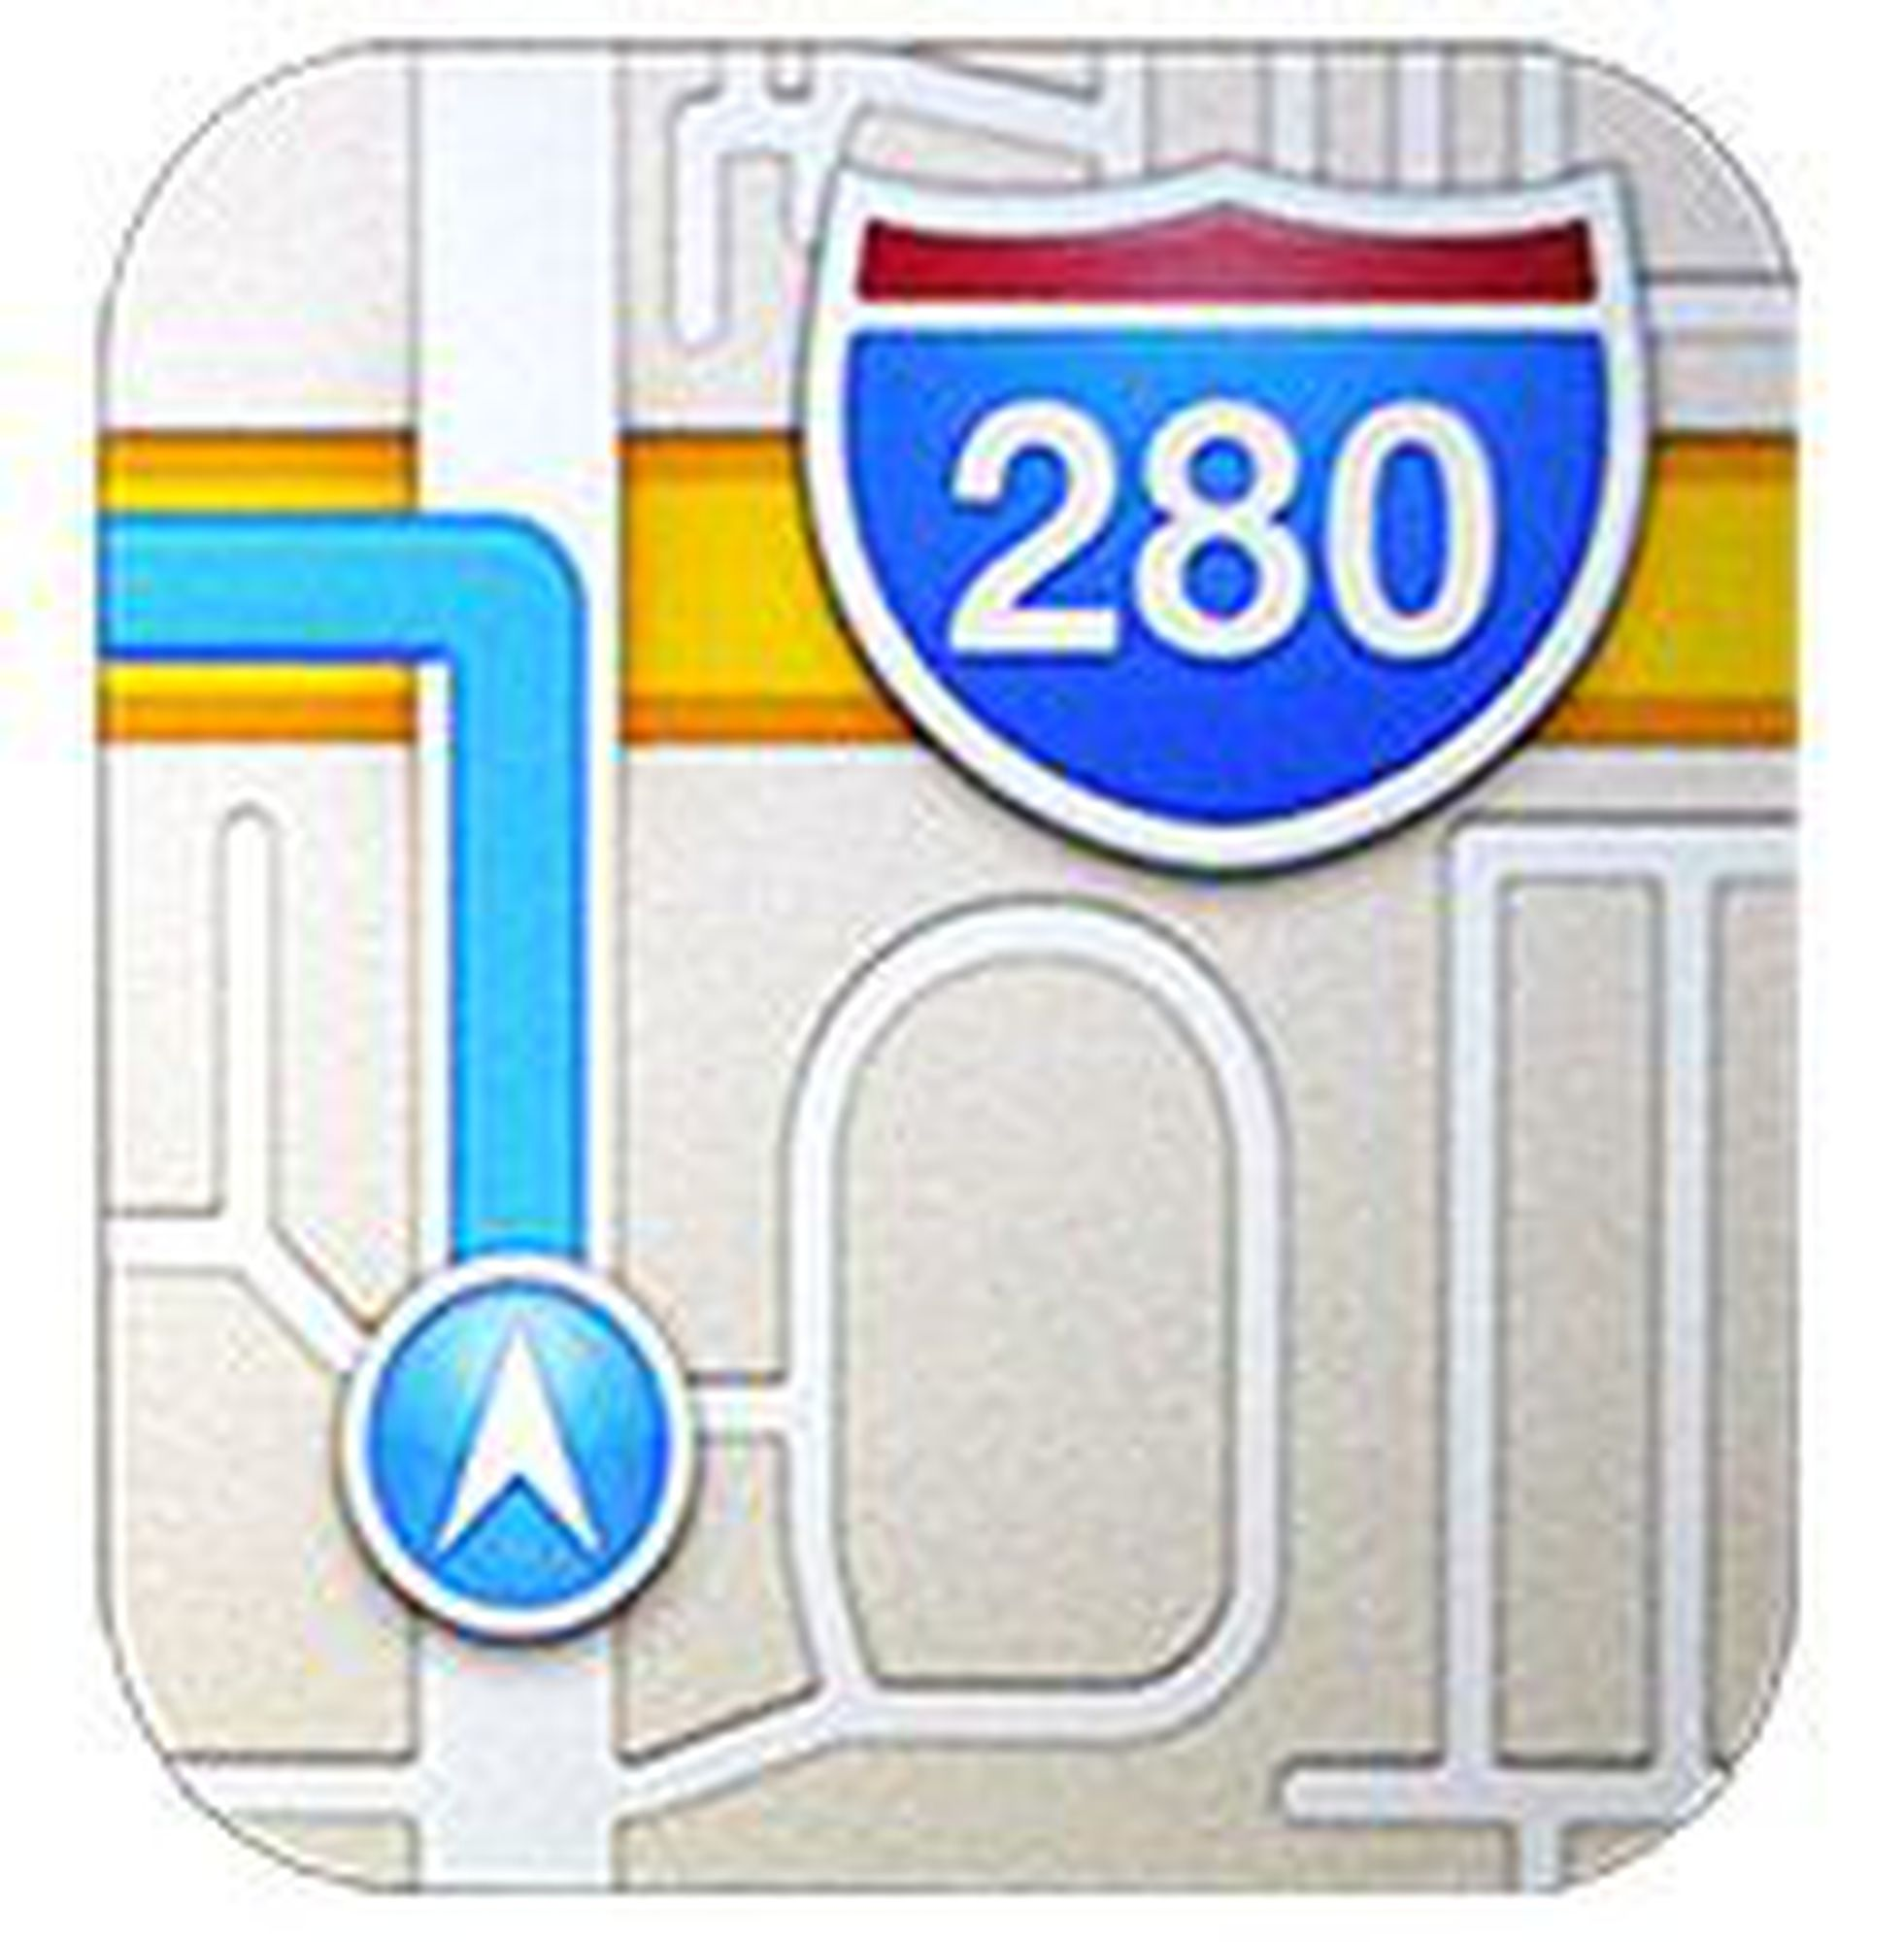 Apple No Longer Saying Maps Are \'Most Powerful Ever\'.